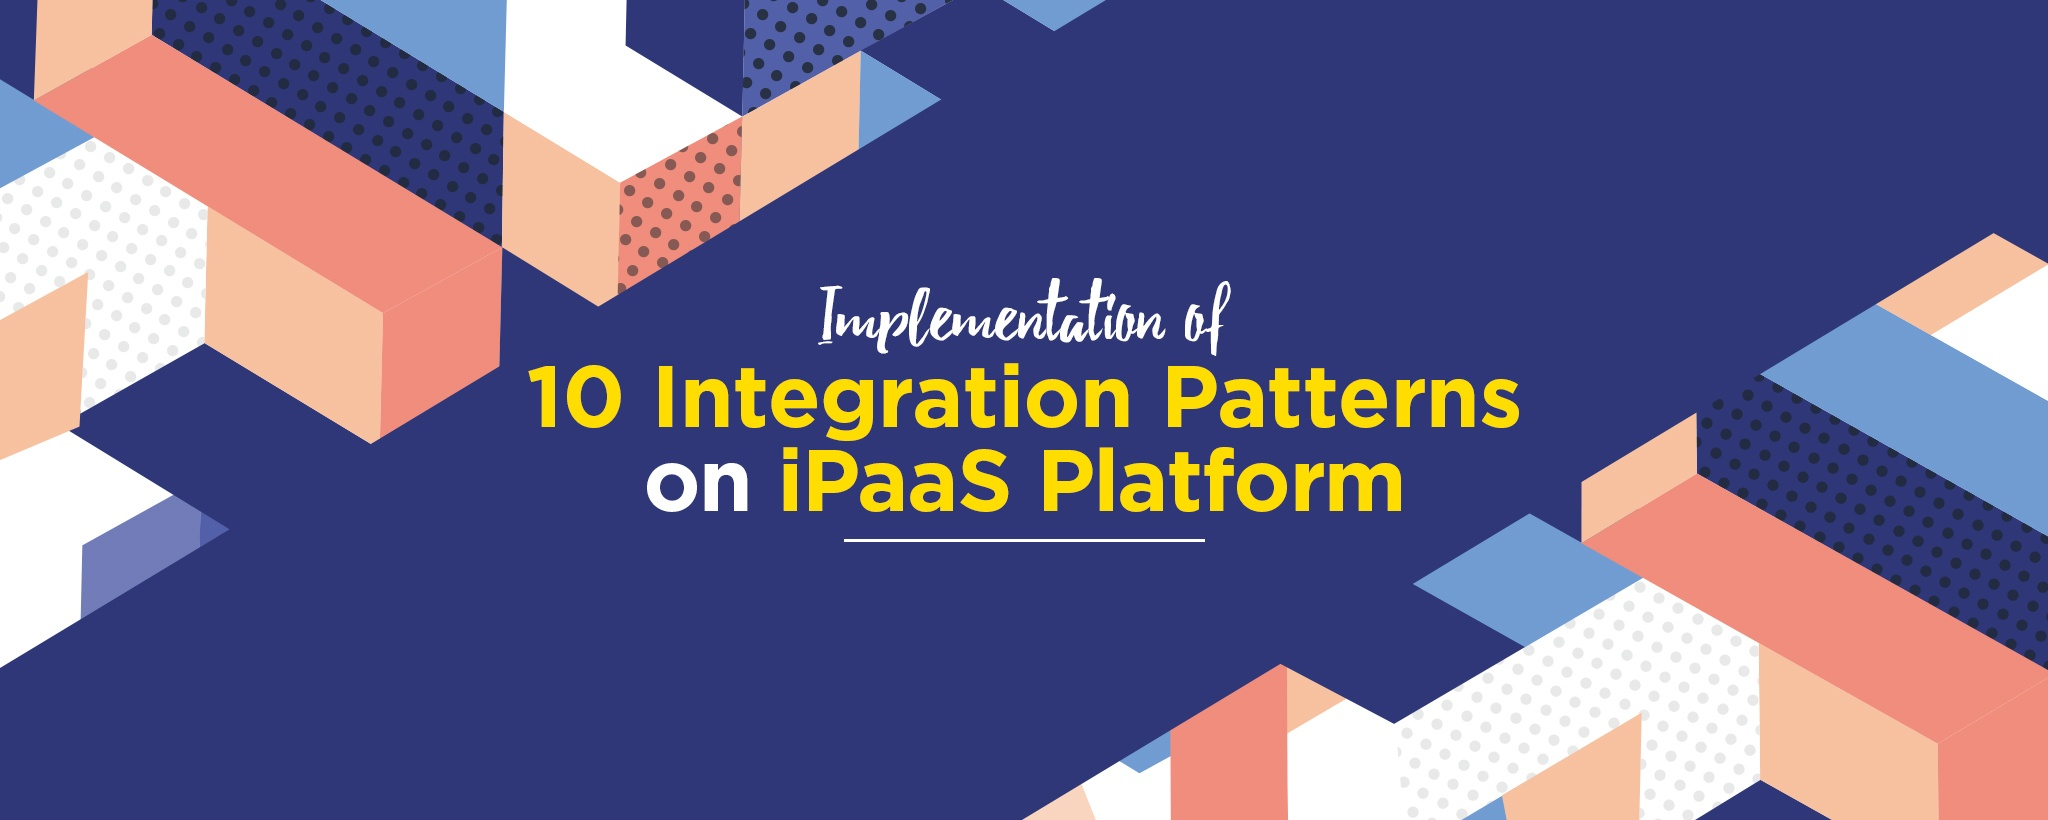 Implementaion-of-10-Integration-Patterns-on-iPaaS-Platform